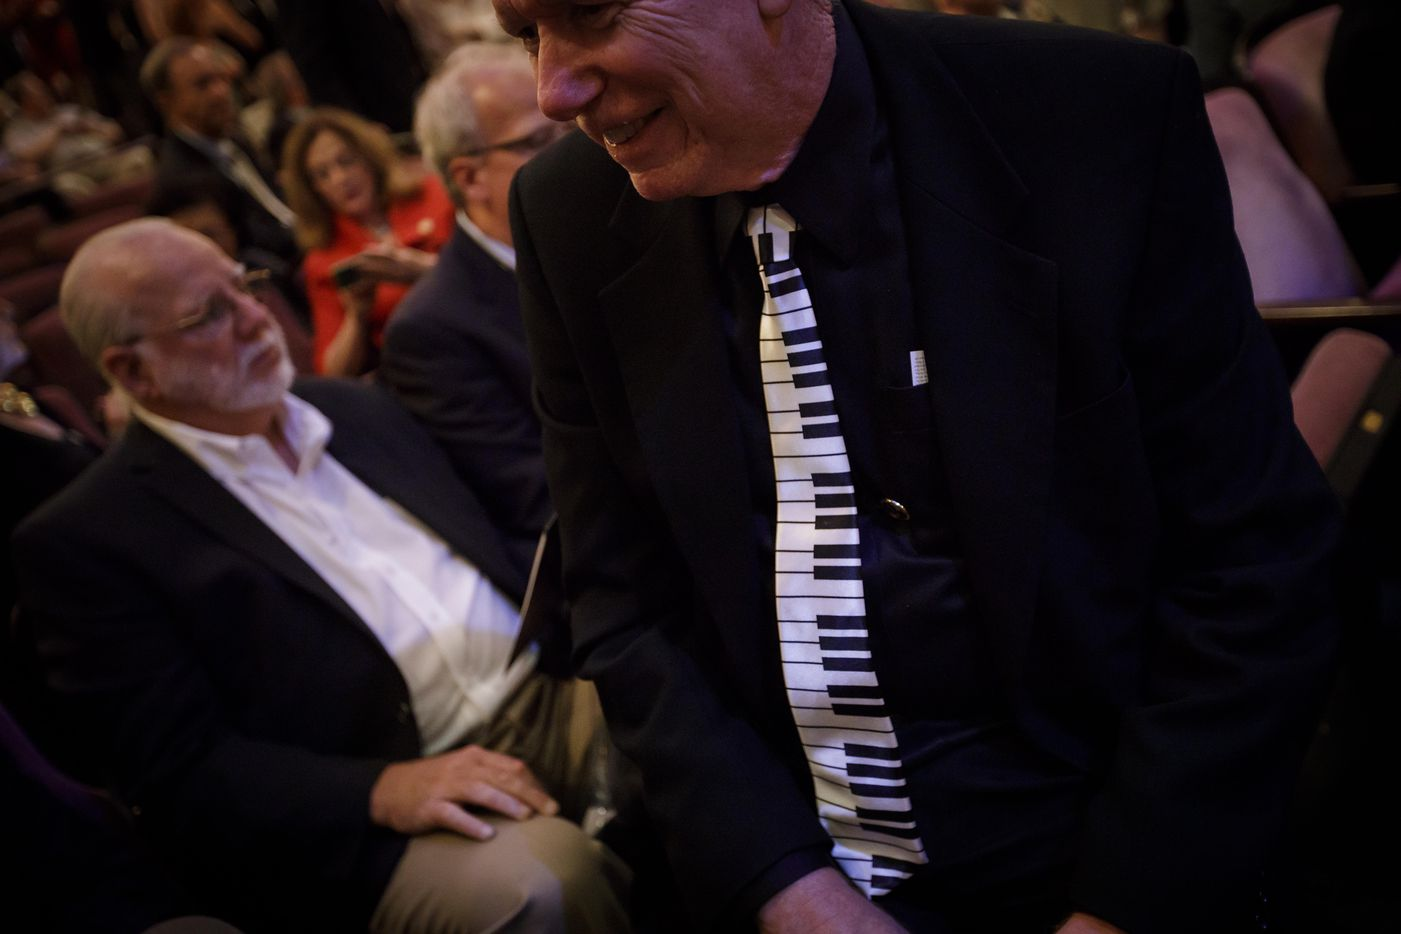 A man in the audience wears a tie showing piano keys to the Van Cliburn International Piano Competition awards ceremony at the Bass Performance Hall in Fort Worth on Saturday, June 10, 2017. (Smiley N. Pool/The Dallas Morning News)